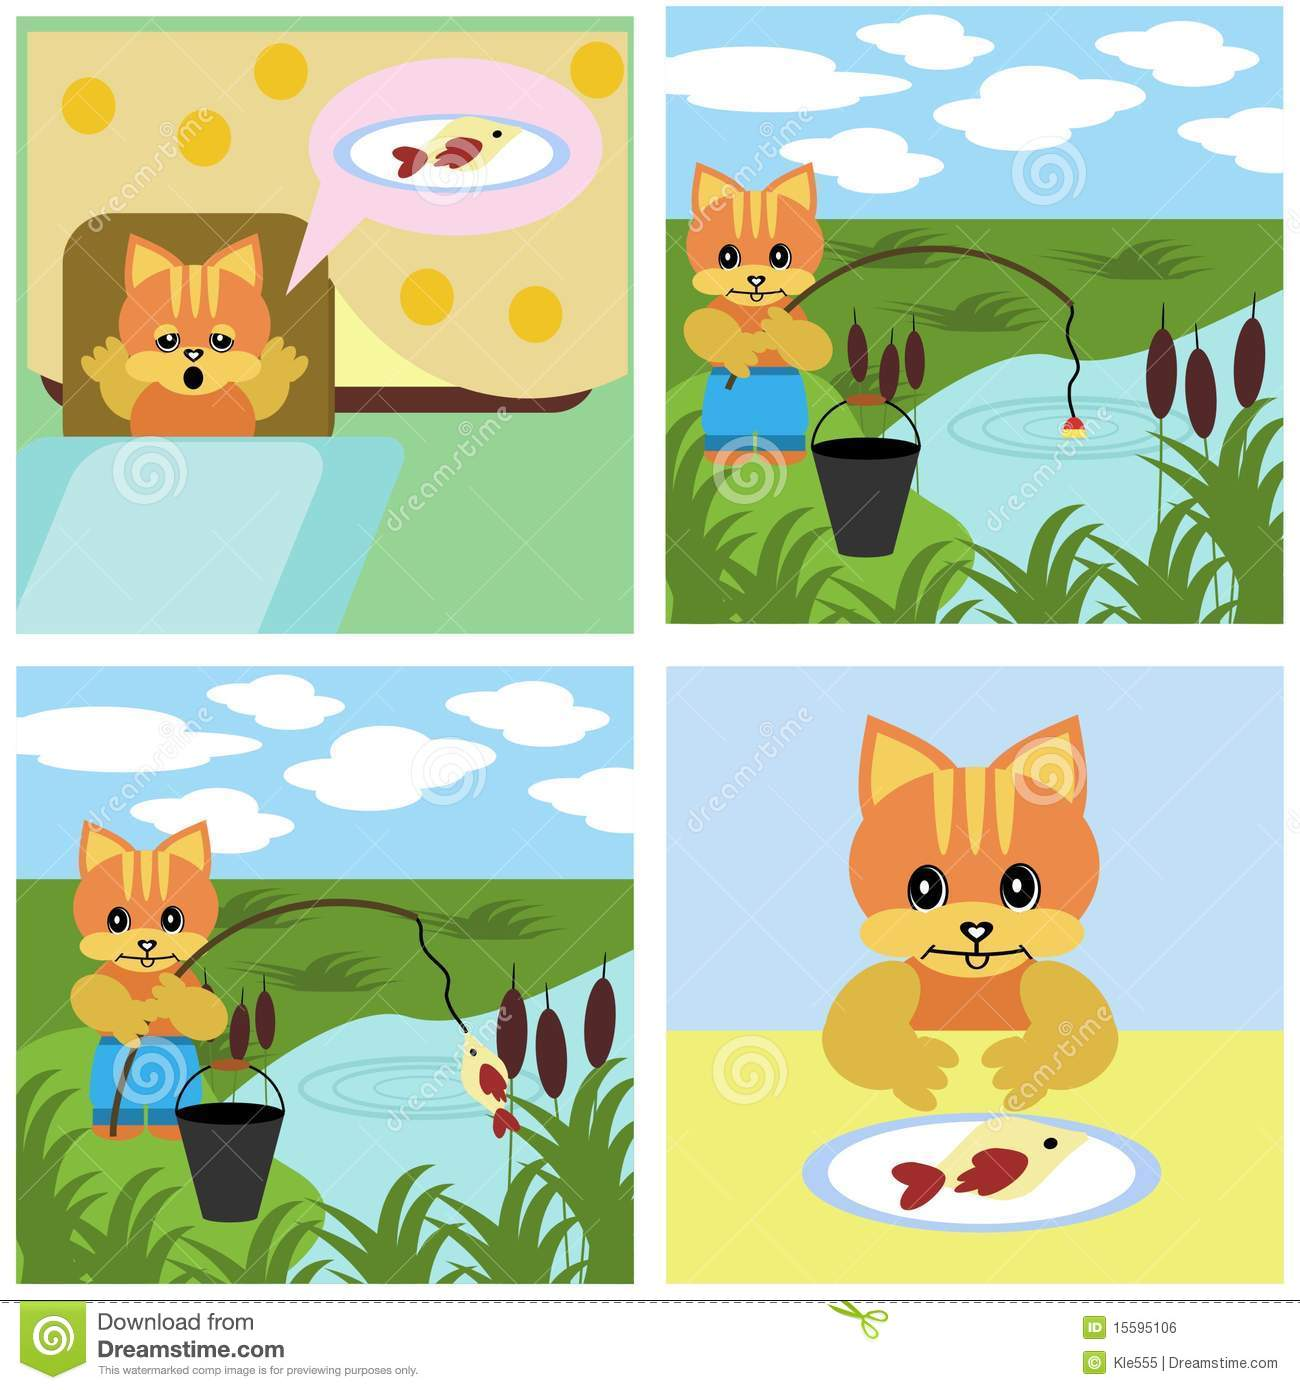 Comics Short Story About Cat Royalty Free Stock Image.